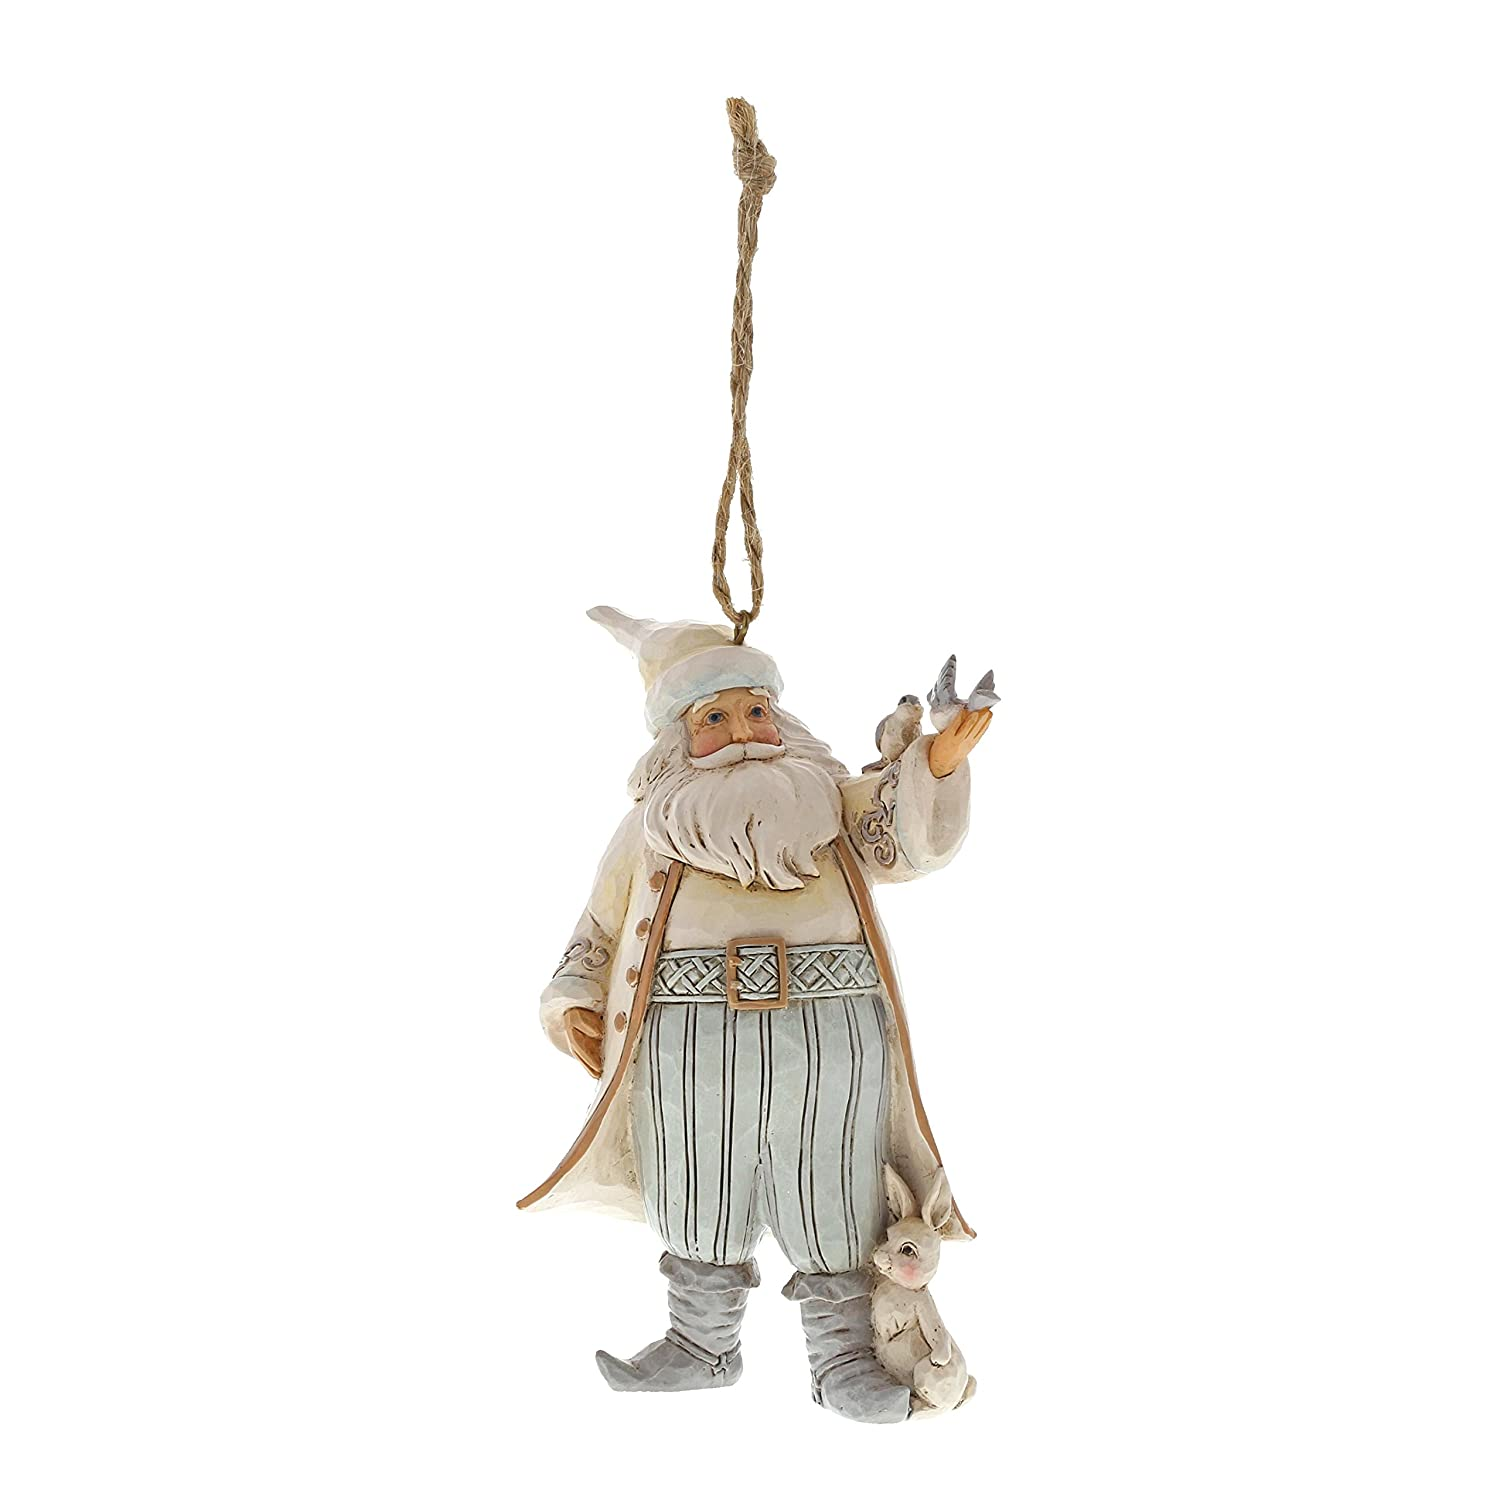 Enesco Jim Shore for Enesco 6001419 - Papá Noel